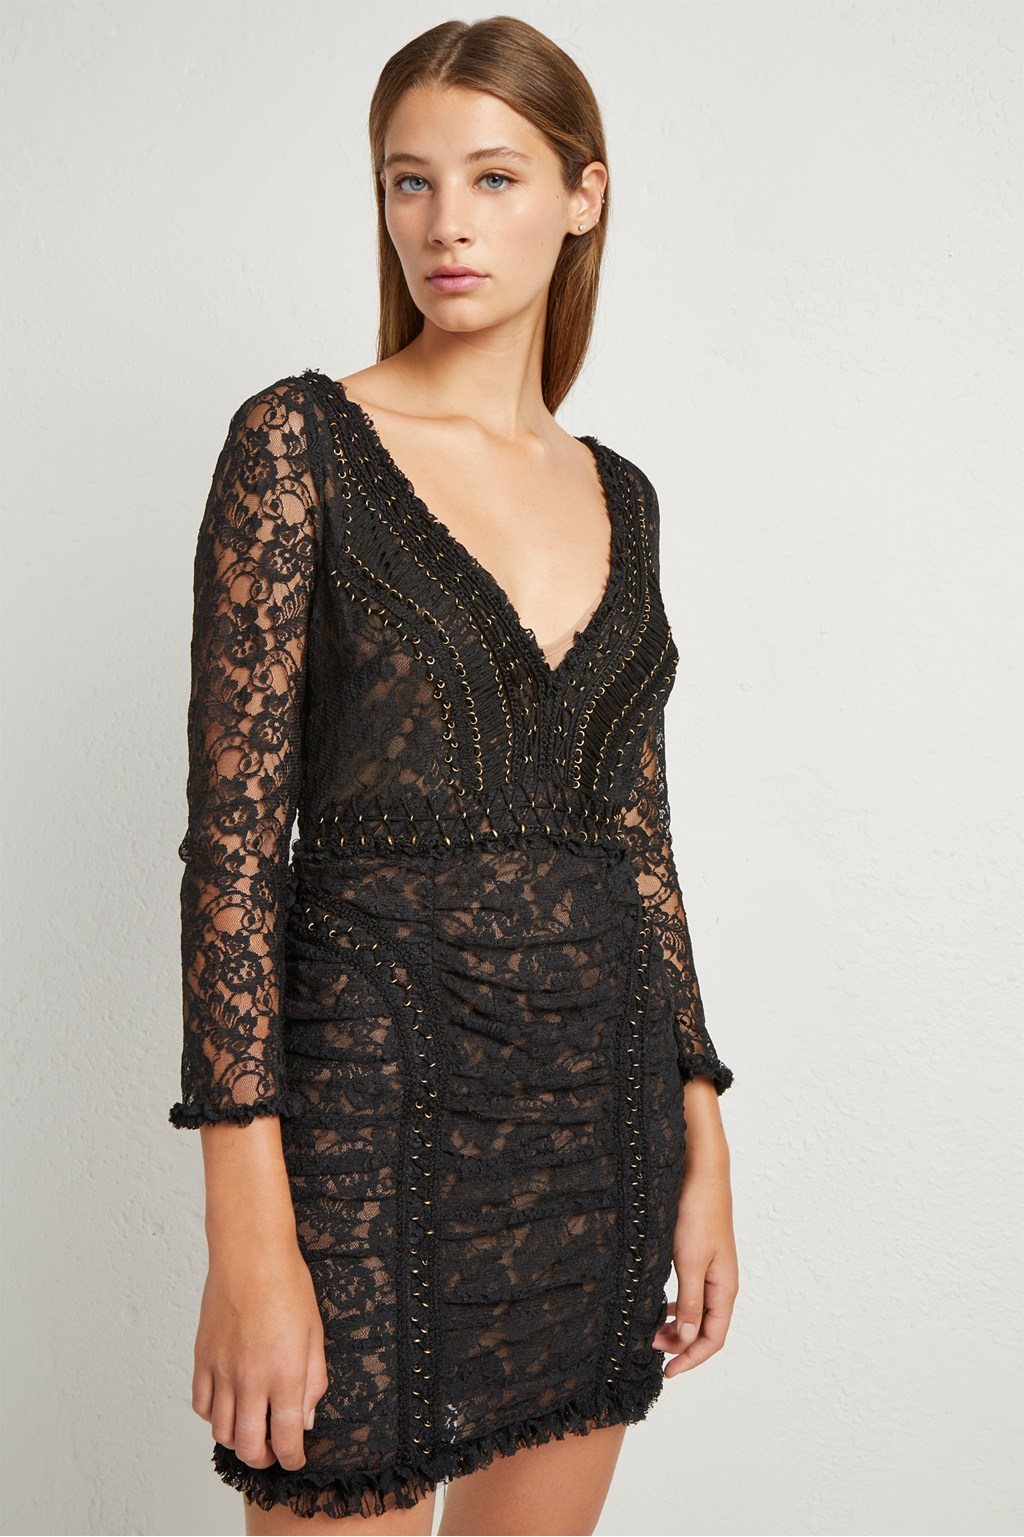 a109b7d9a4324 Muriel Lace Bodycon Dress. loading images.